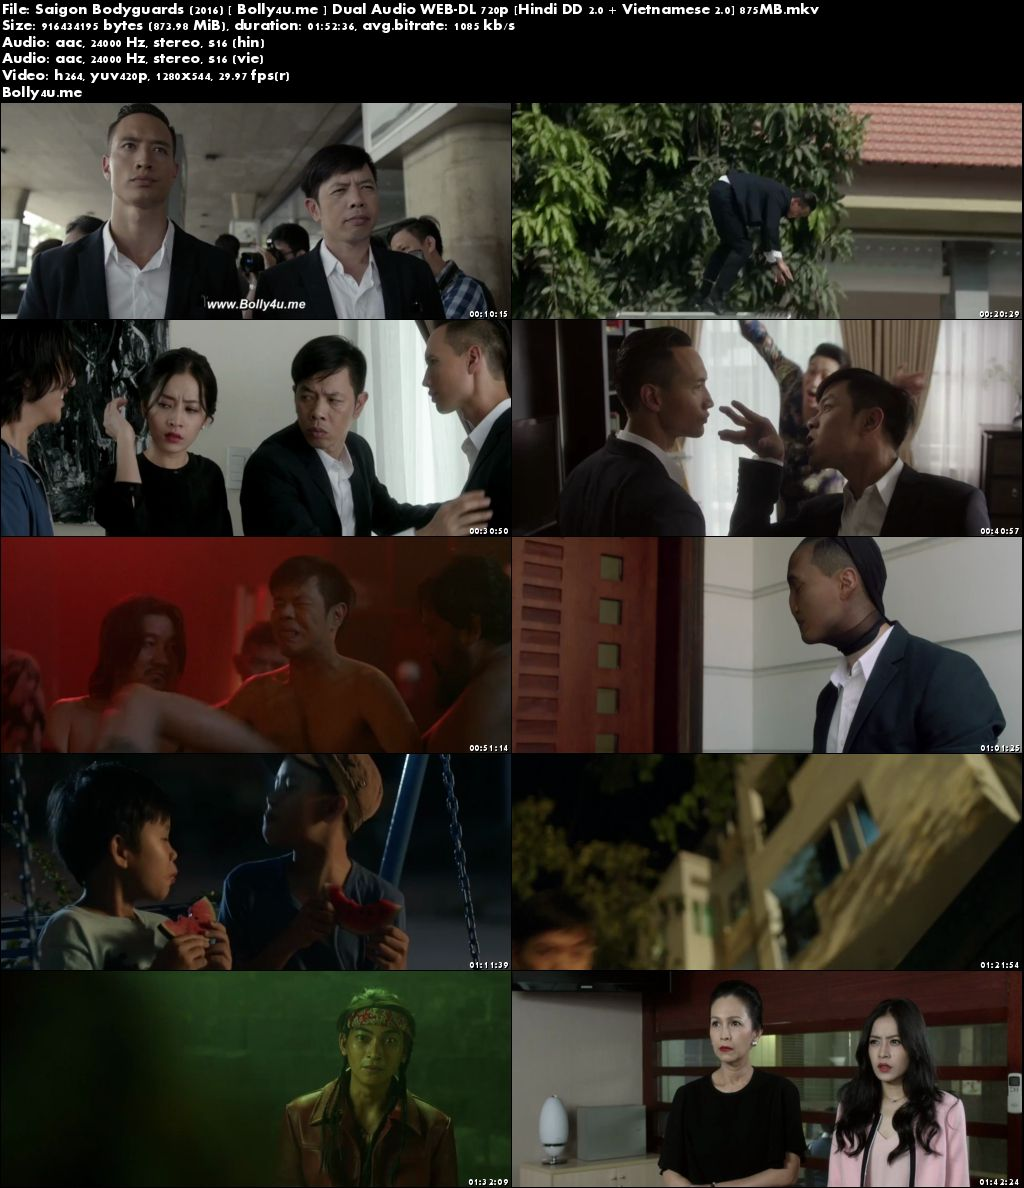 Saigon Bodyguards 2016 WEB-DL 850MB Hindi Dual Audio 720p Download